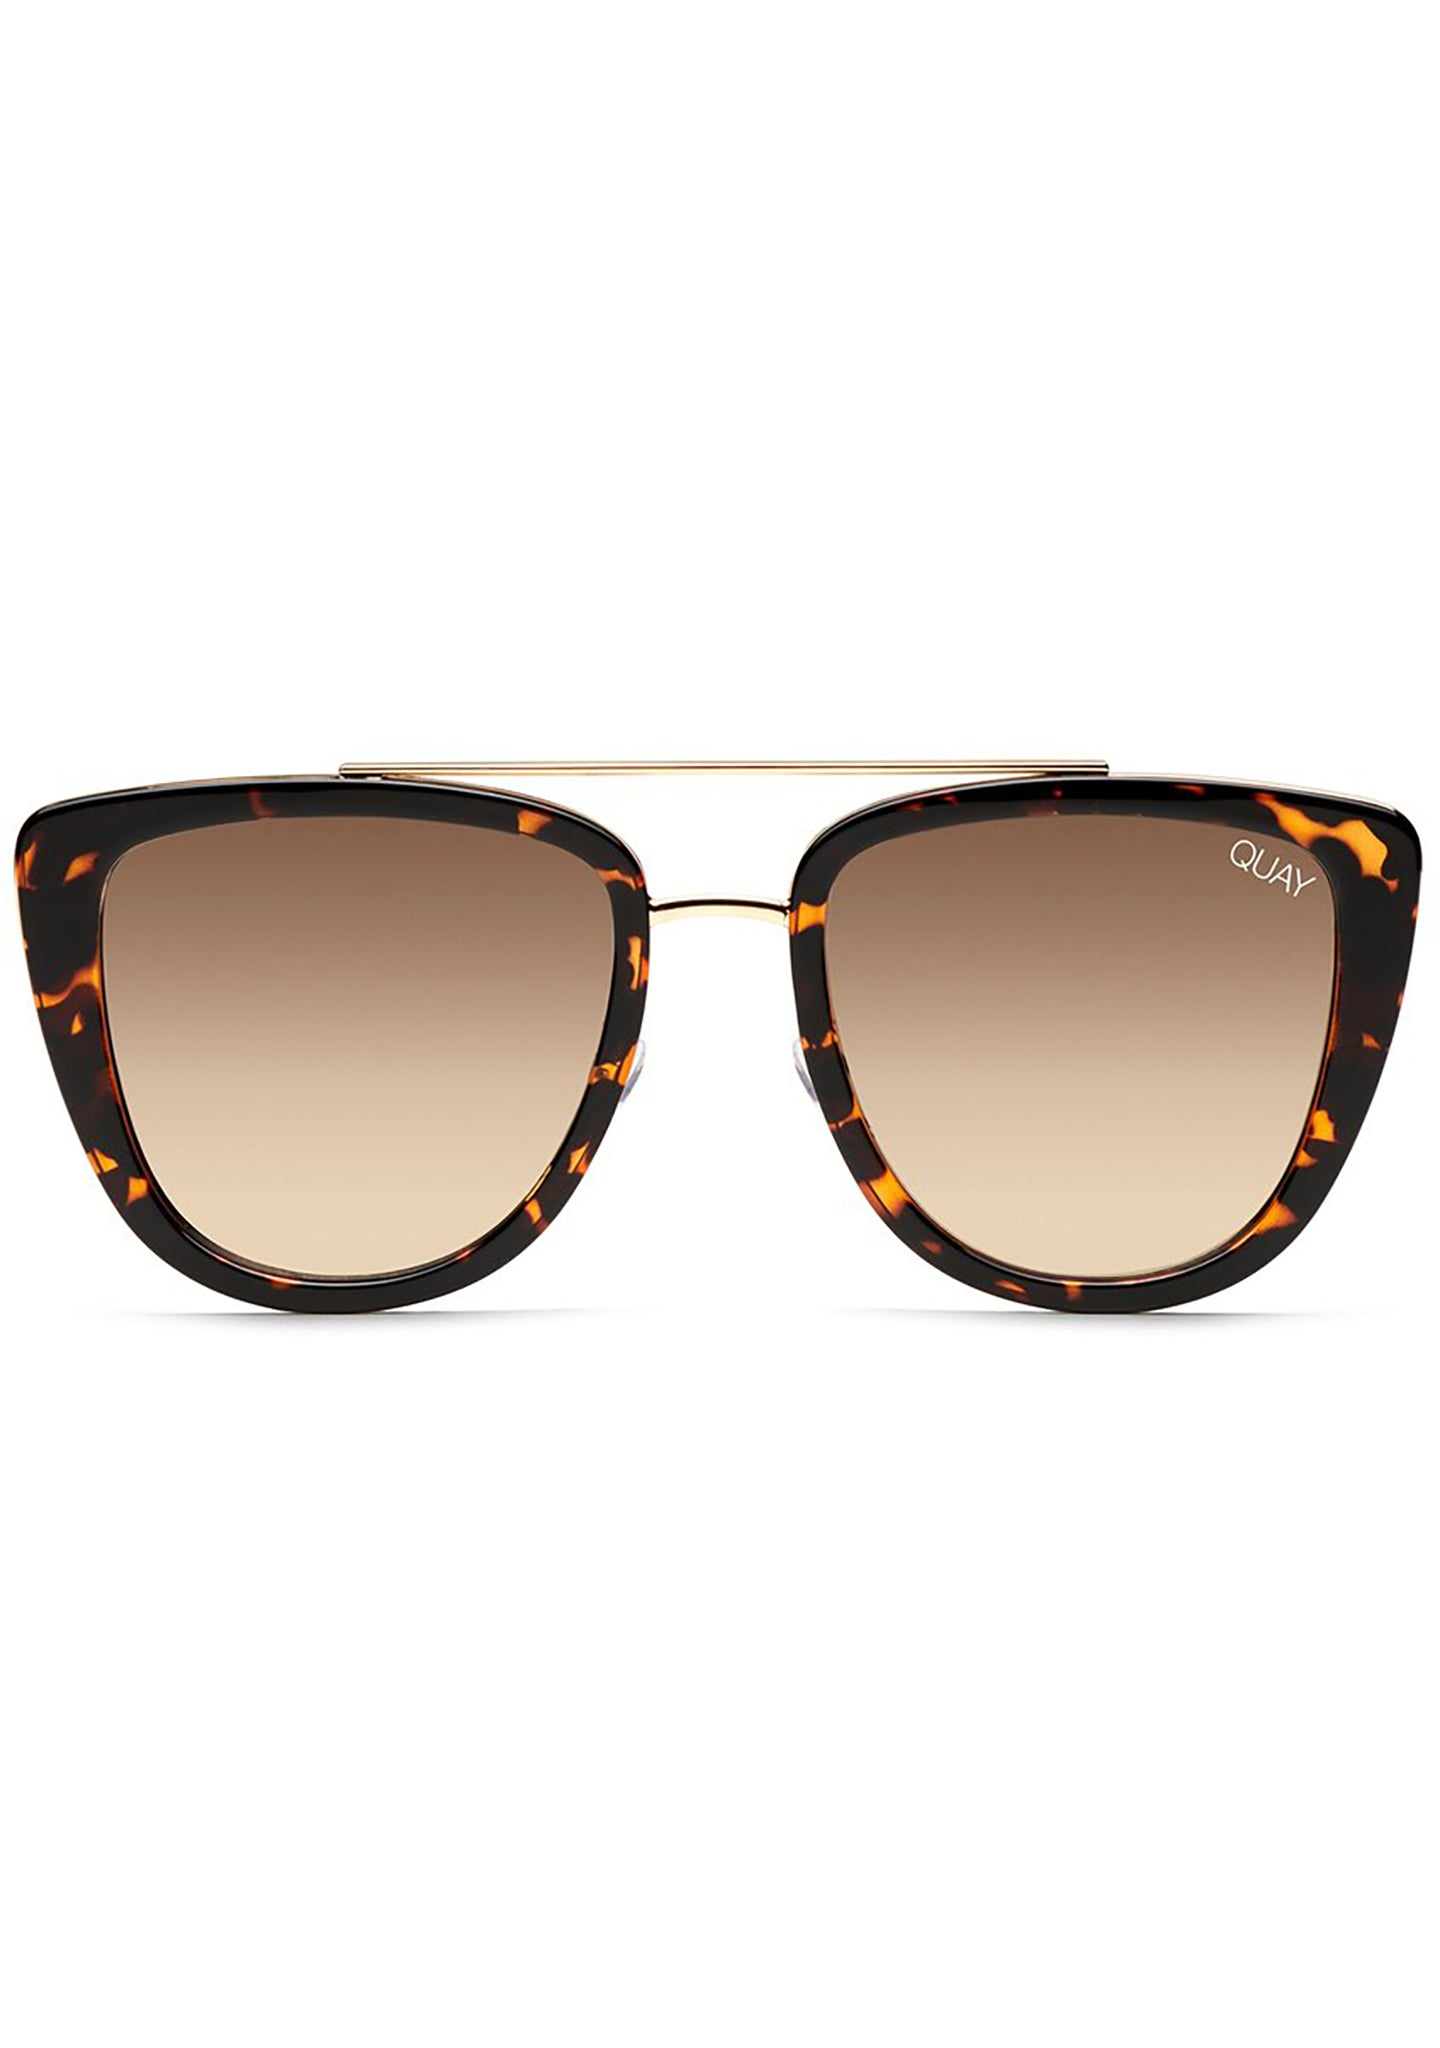 French Kiss Sunglasses in Tortoise/Gold